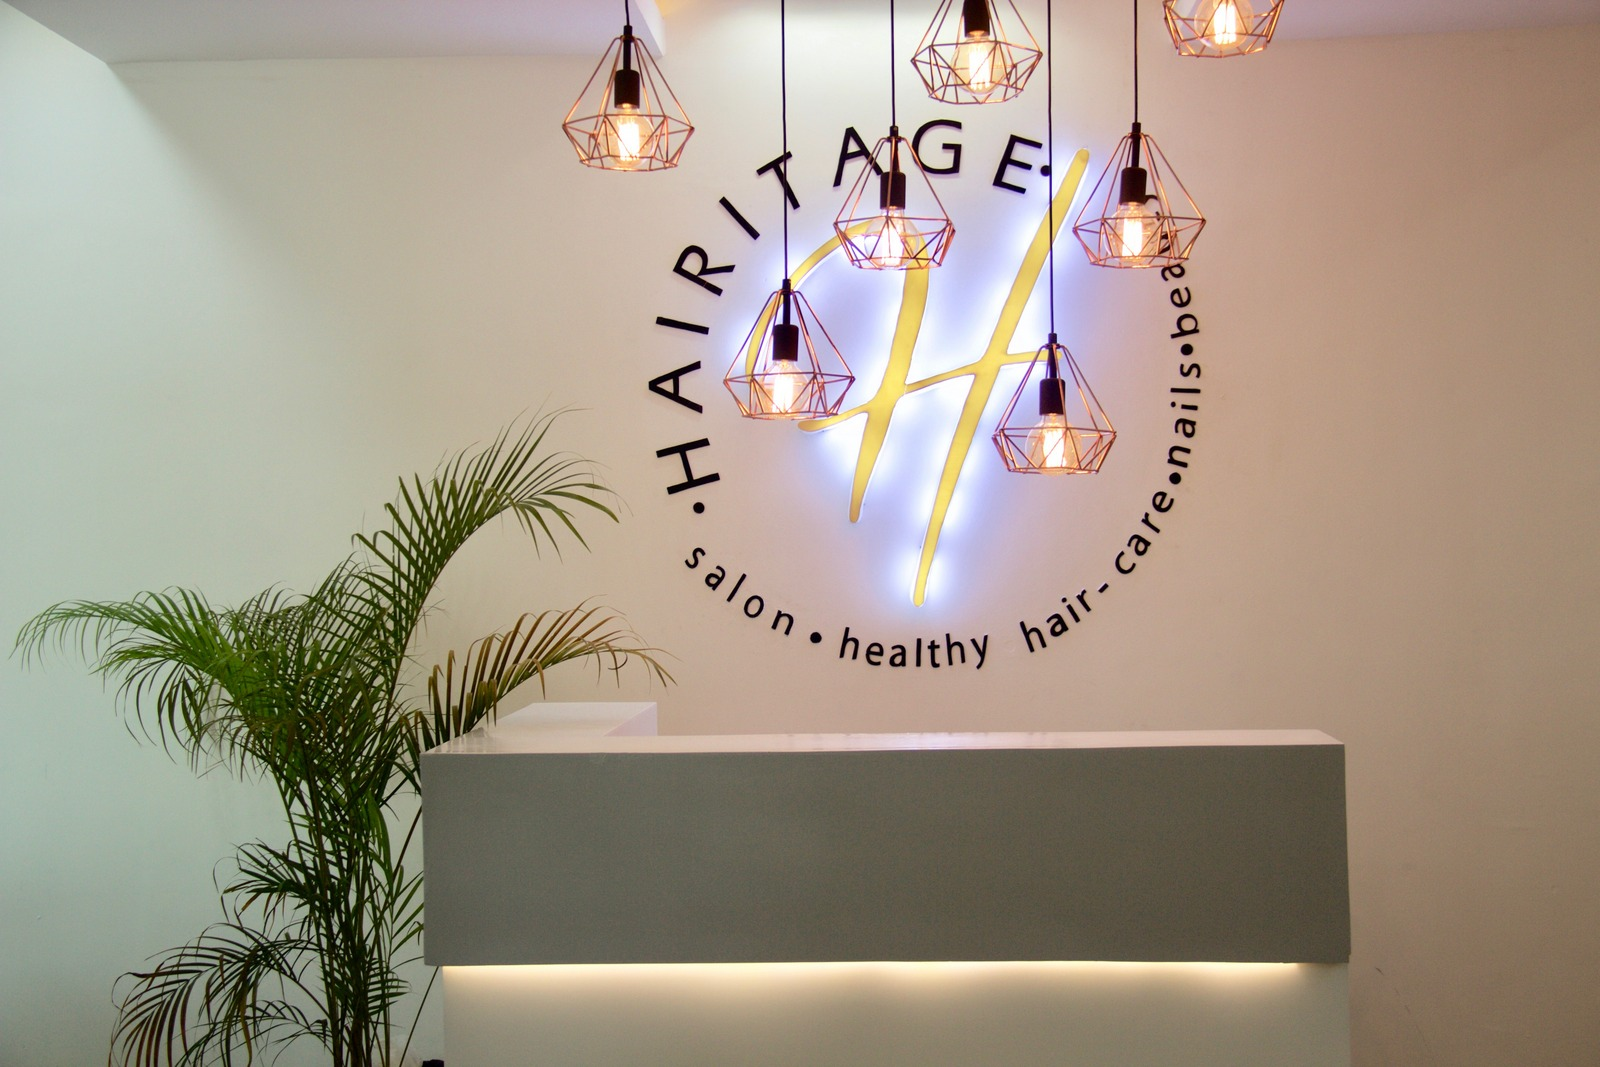 HAIRITAGE HUB | A SALON THAT CARES FOR YOUR HAIR